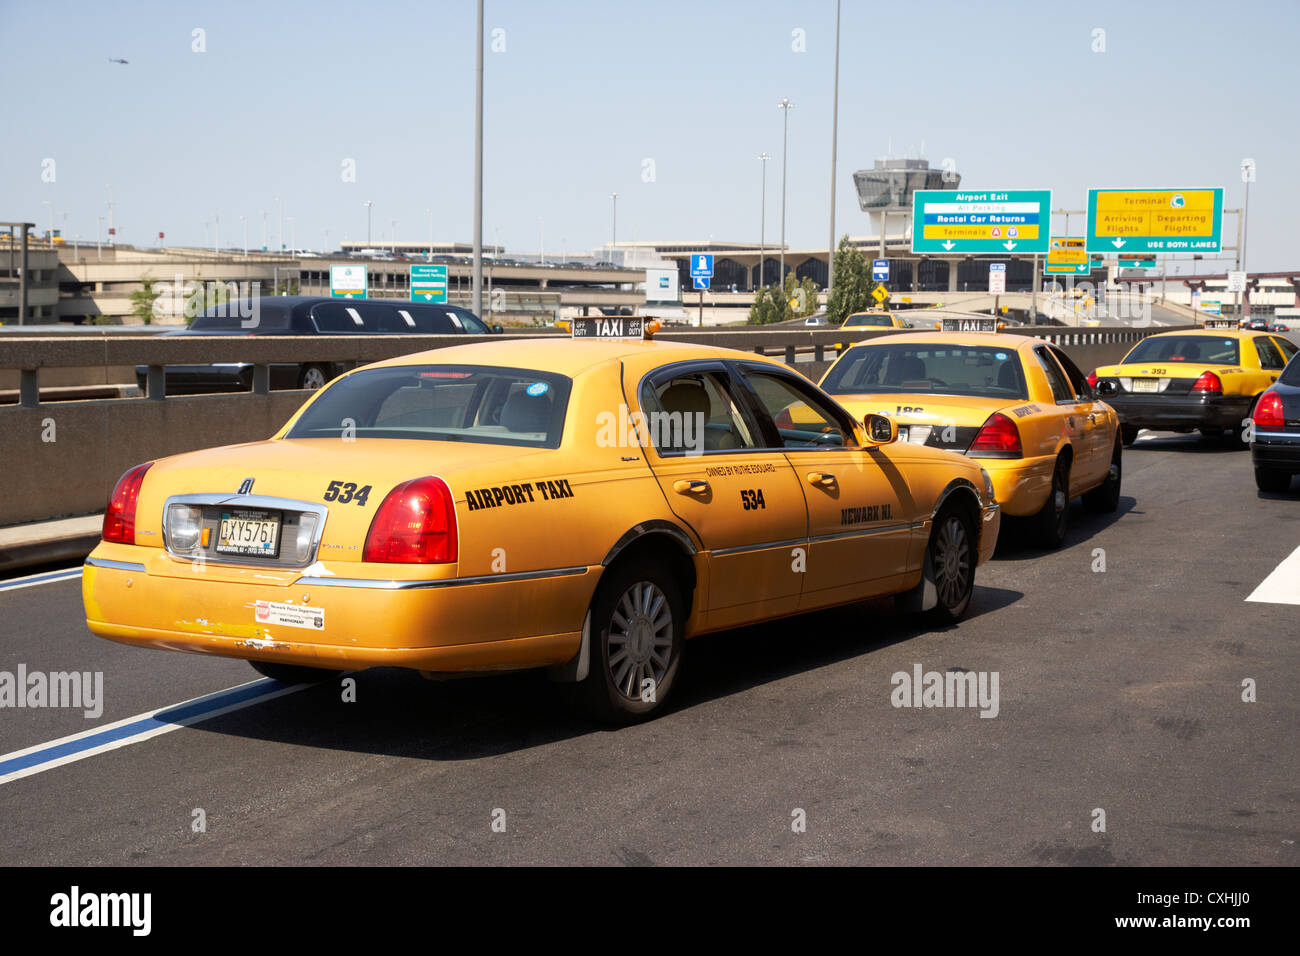 yellow cabs airport taxis at newark liberty airport new jersey usa - Stock Image